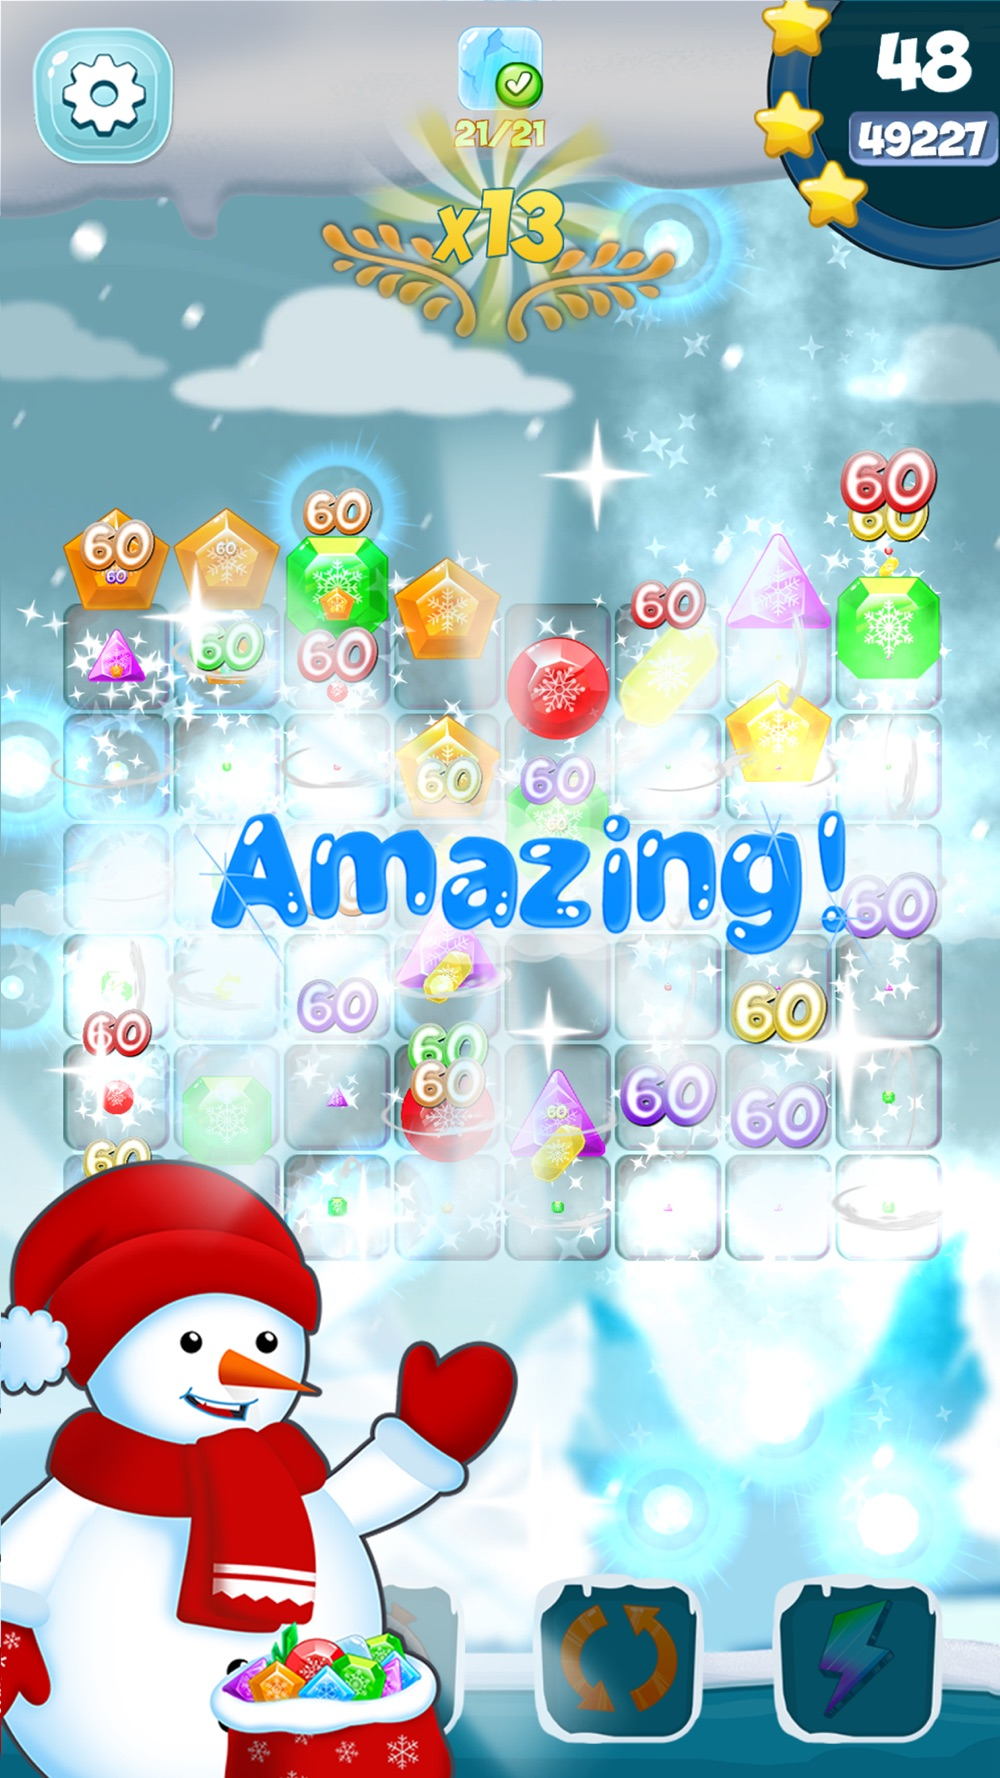 Frozen Diamond Mash: Winter Edition - Puzzle Game hack tool